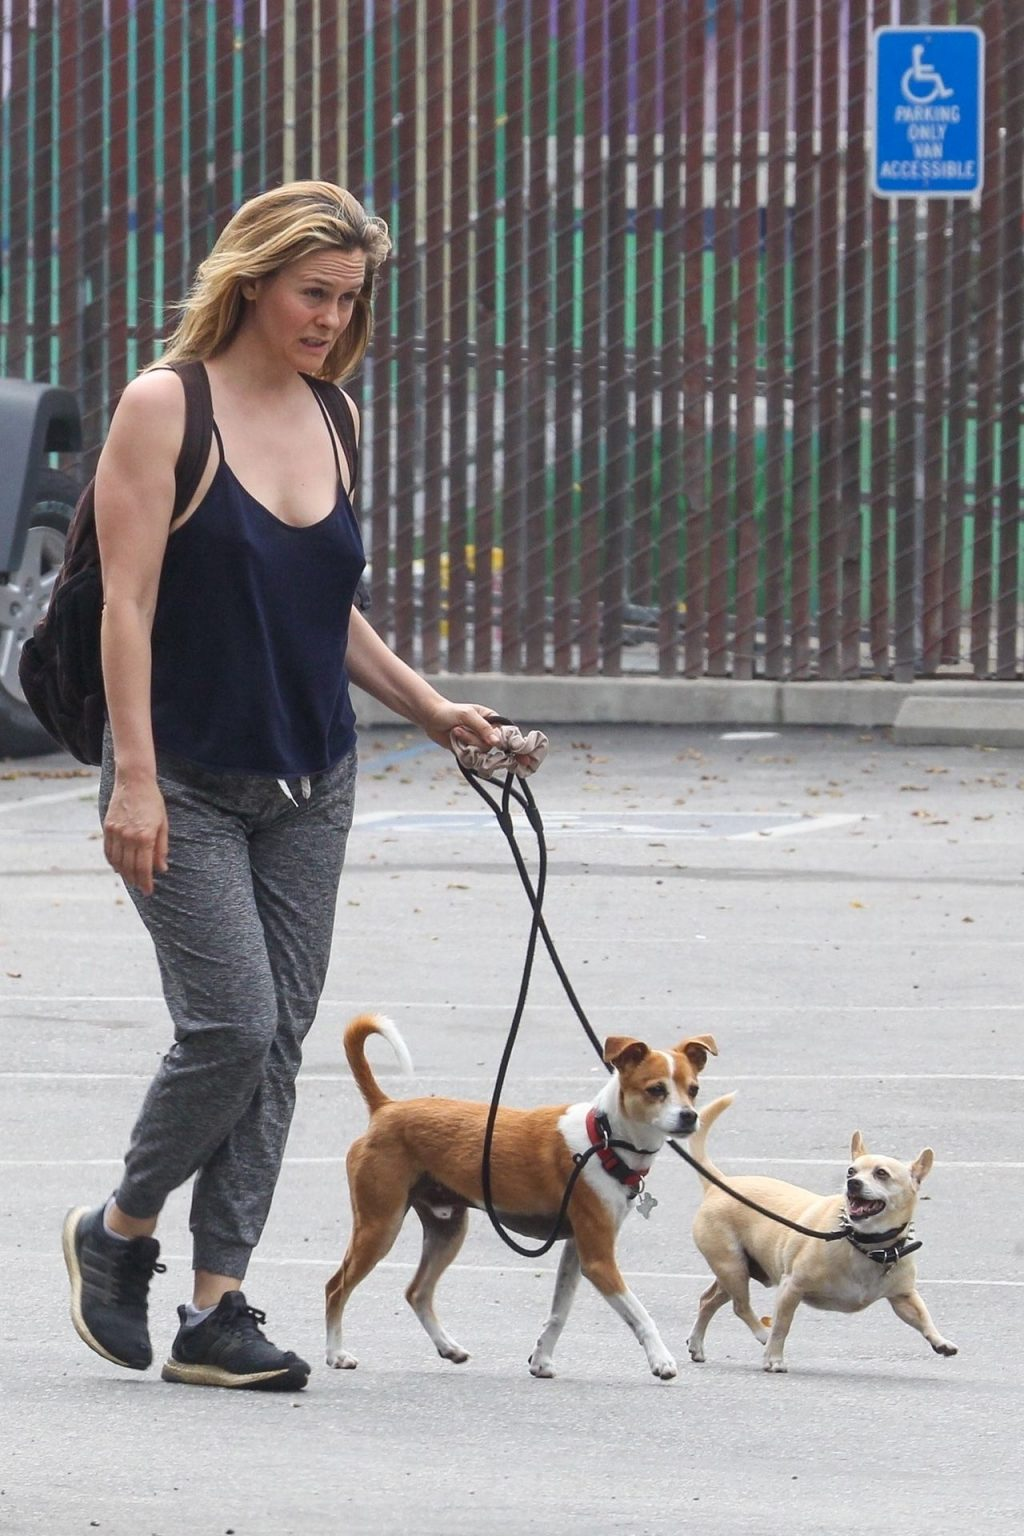 Alicia Silverstone Goes Braless While Walking with Her Dogs (37 Photos)